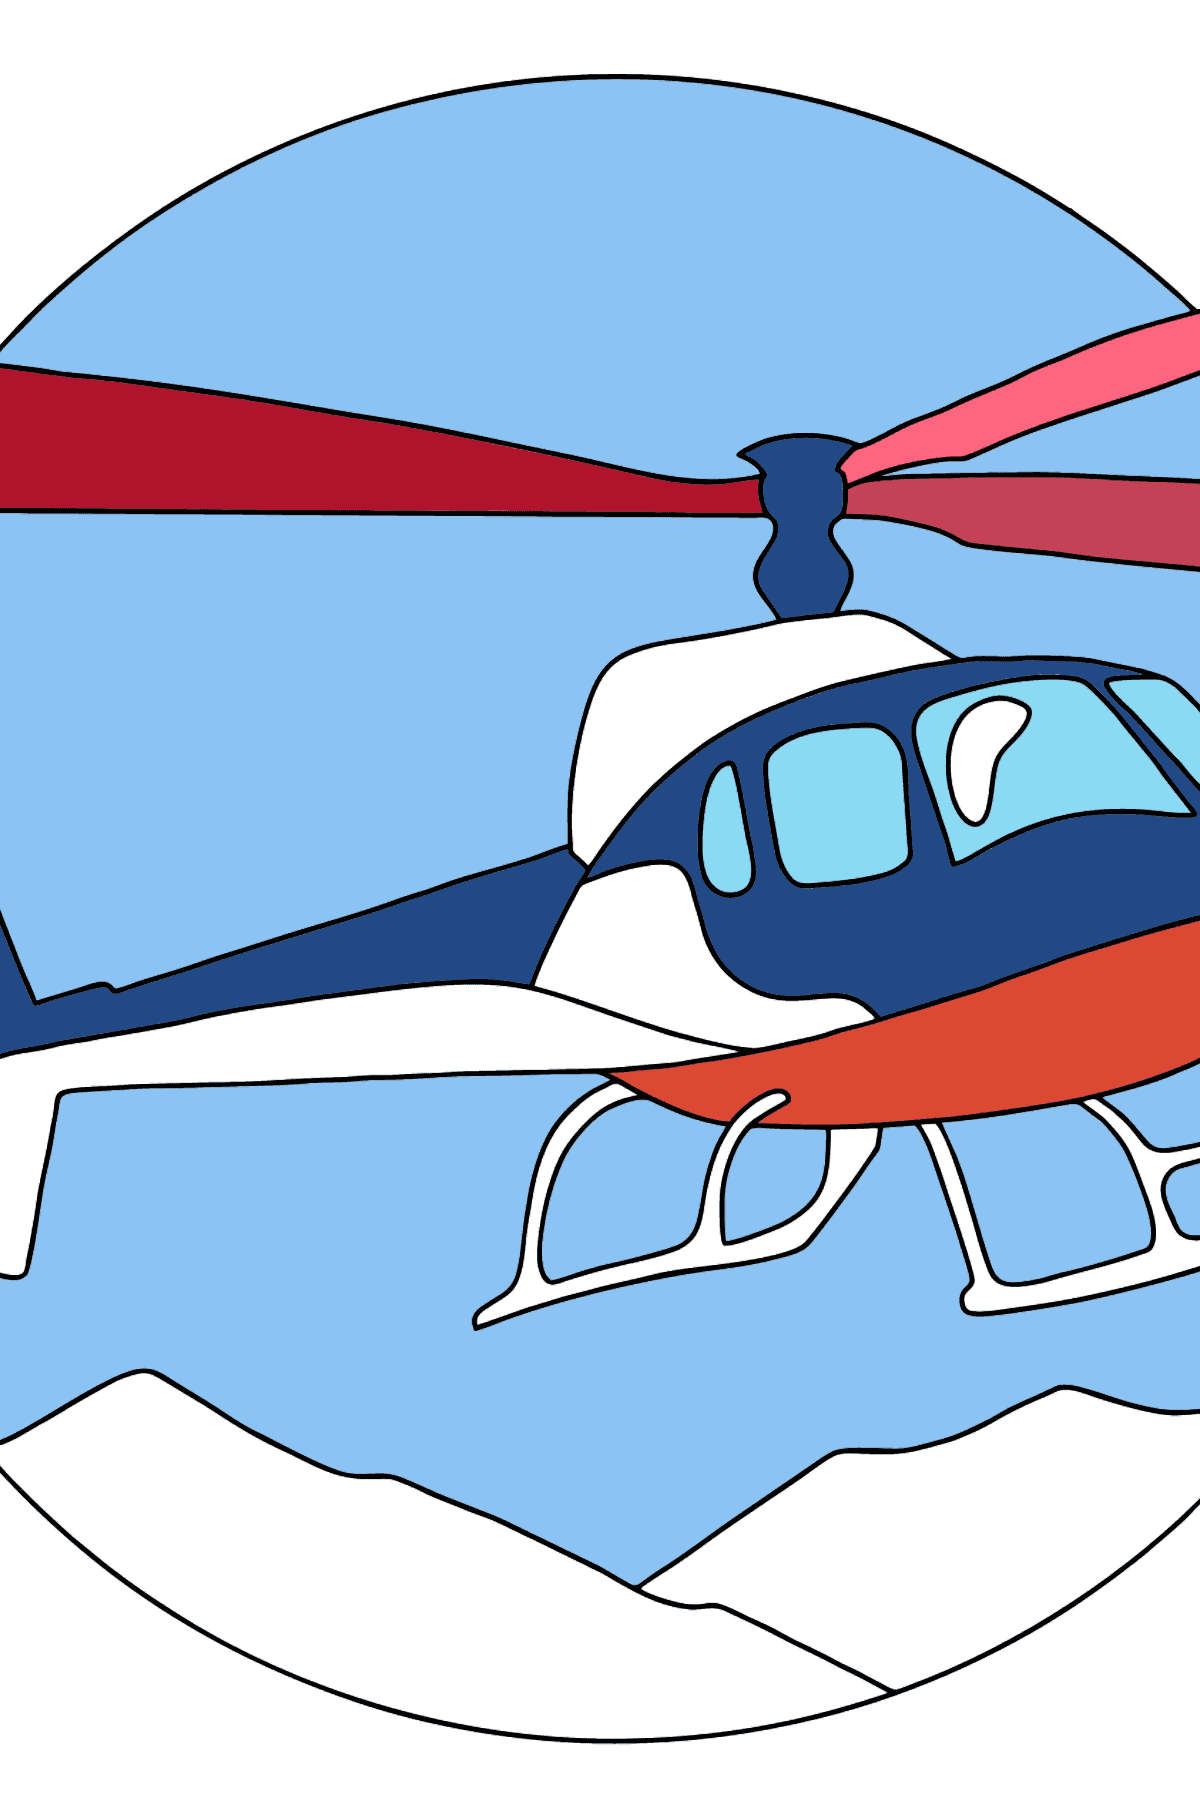 Coloring Page - A City Helicopter - Coloring Pages for Kids